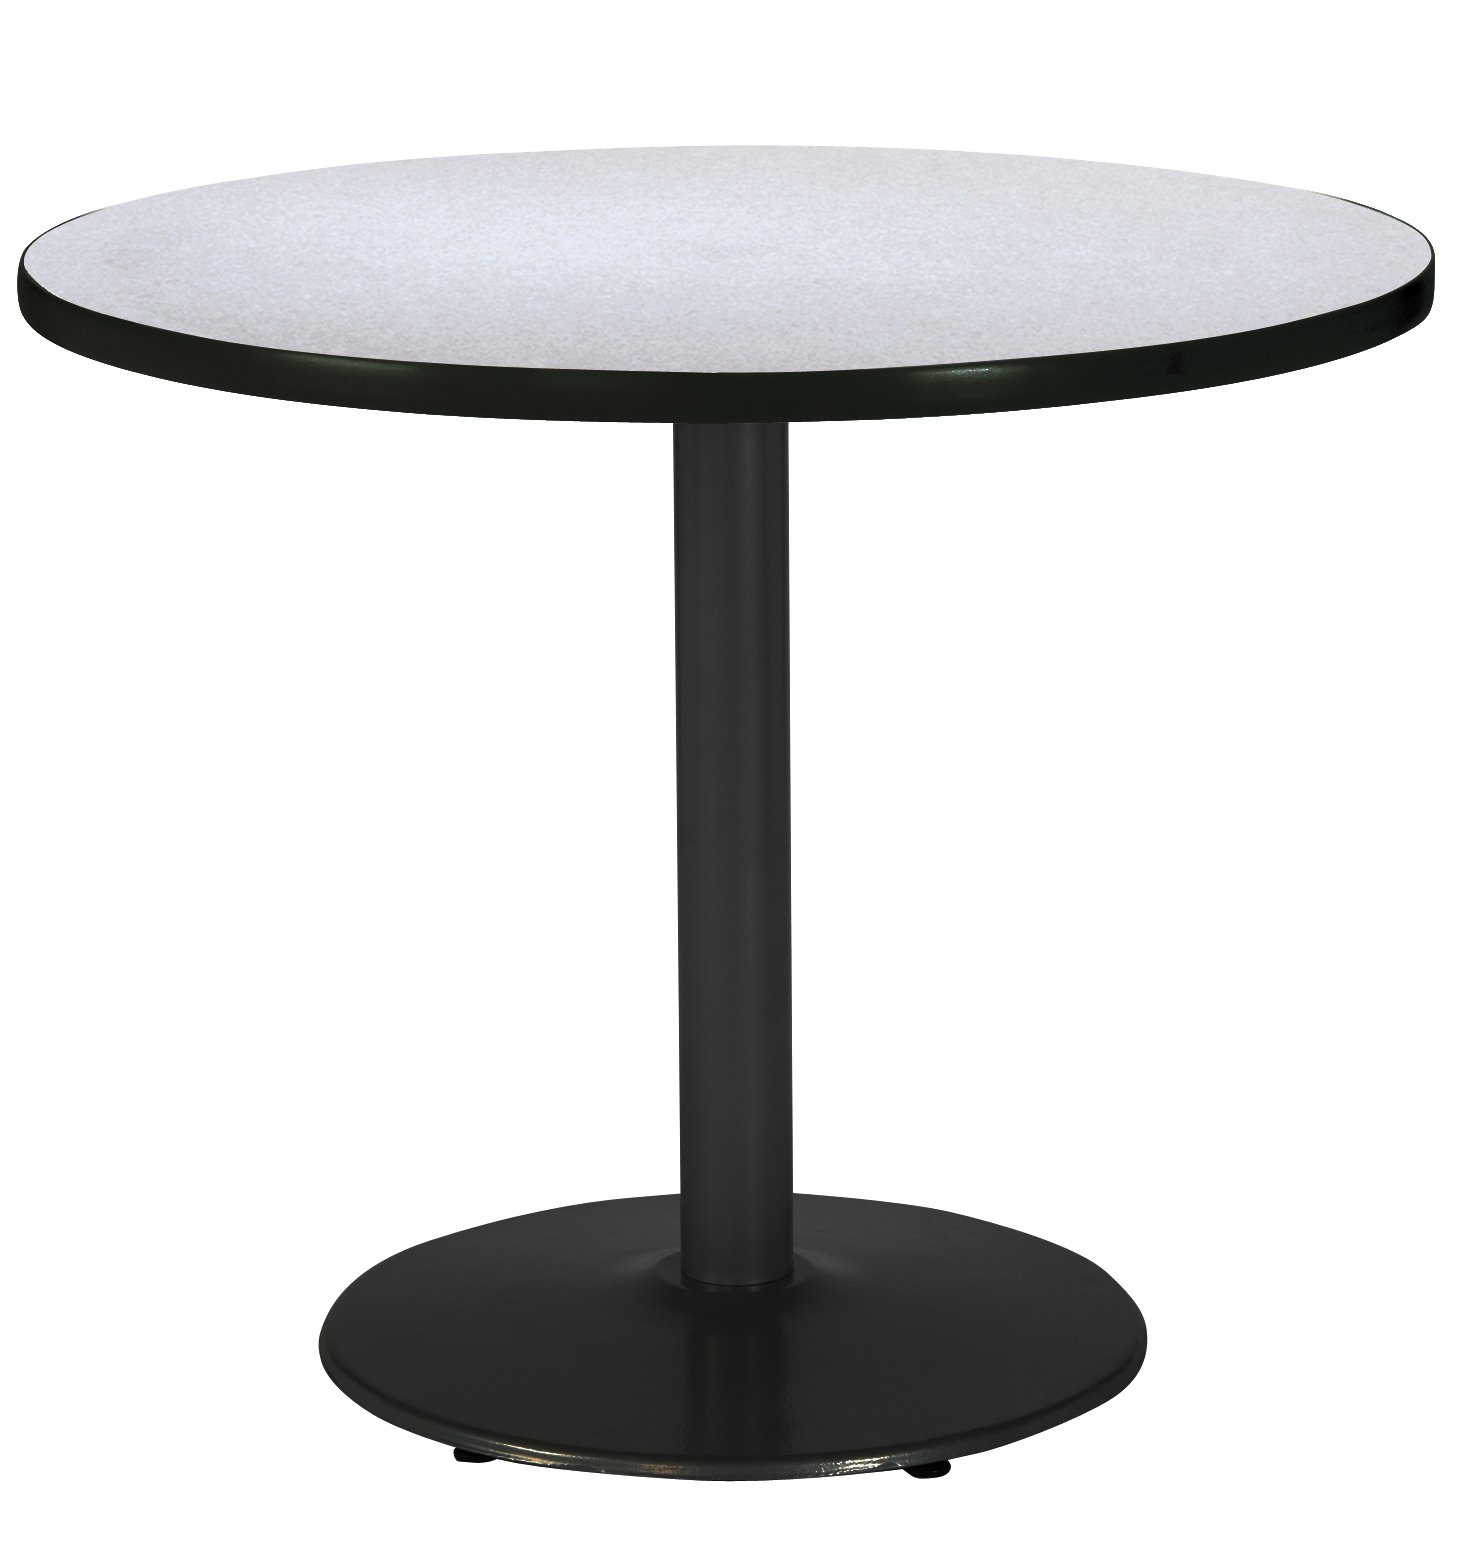 KFI Seating Round Black Base Pedestal Table with Top, Grey Nebula, 36''